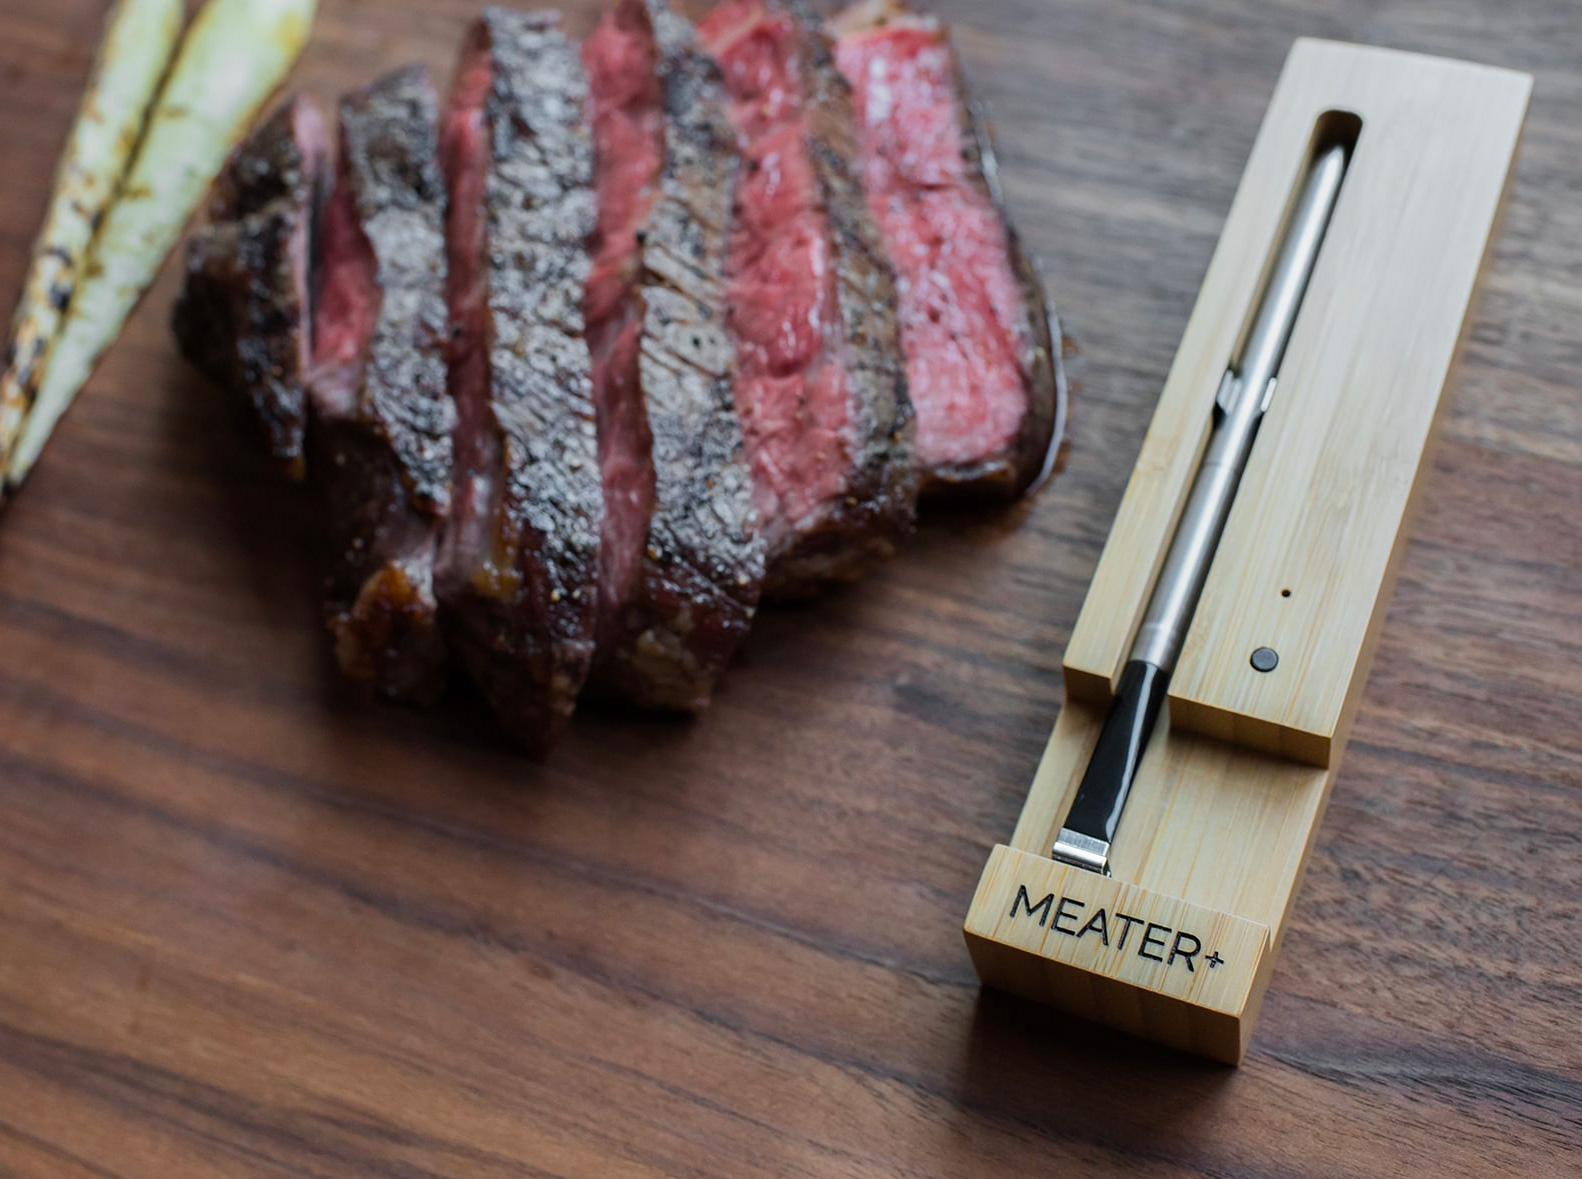 Meet Meater+, the Wireless Smart Meat Thermometer at werd.com